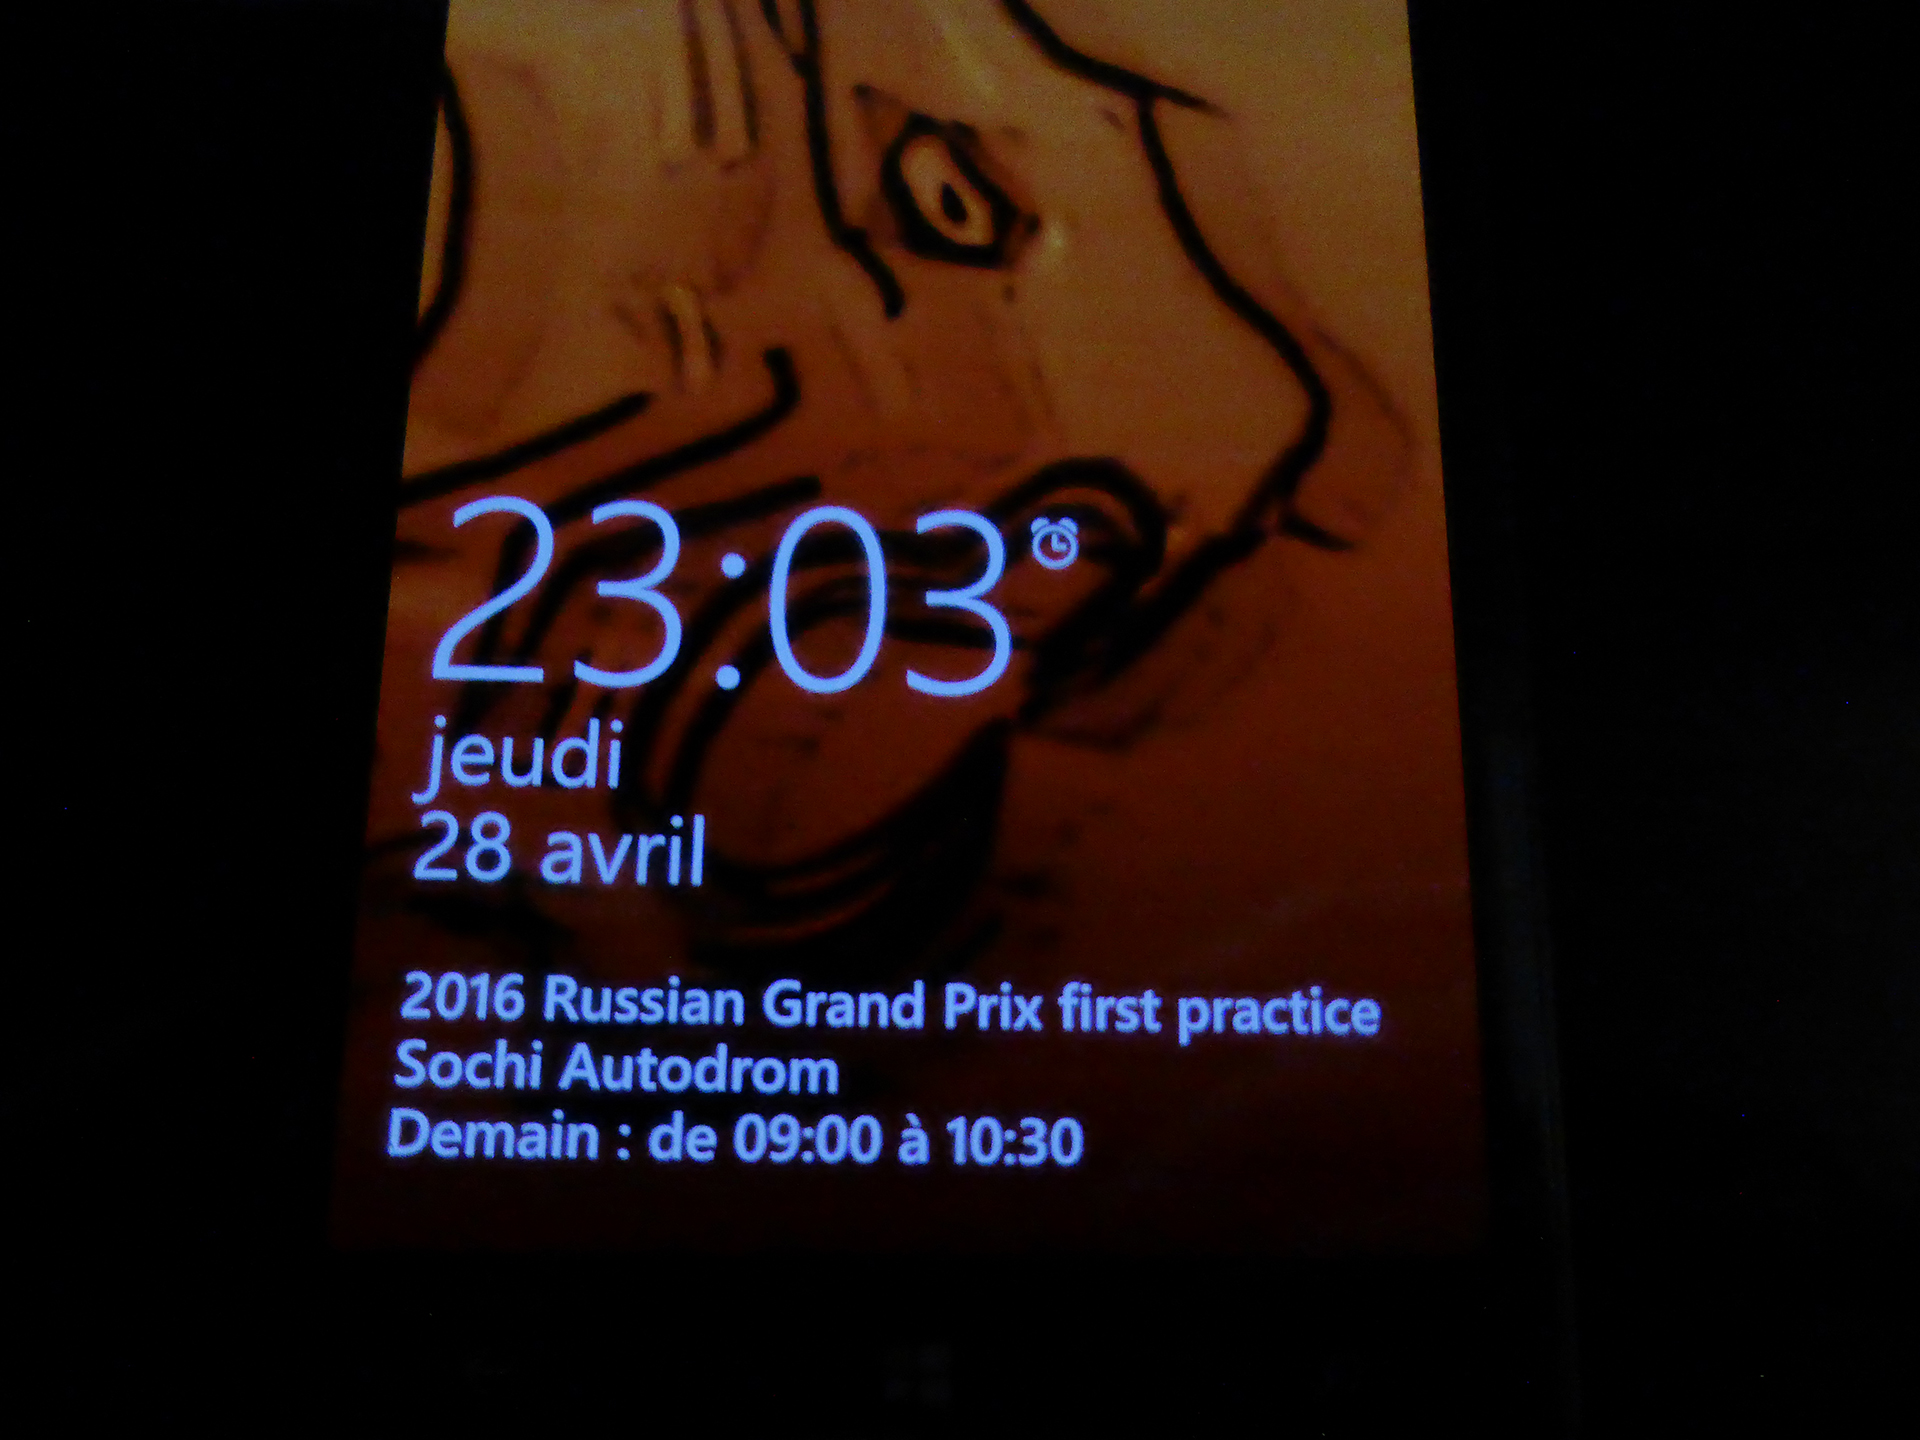 My WinPhone - calendrier F1 - artwork Tiger by ELJ